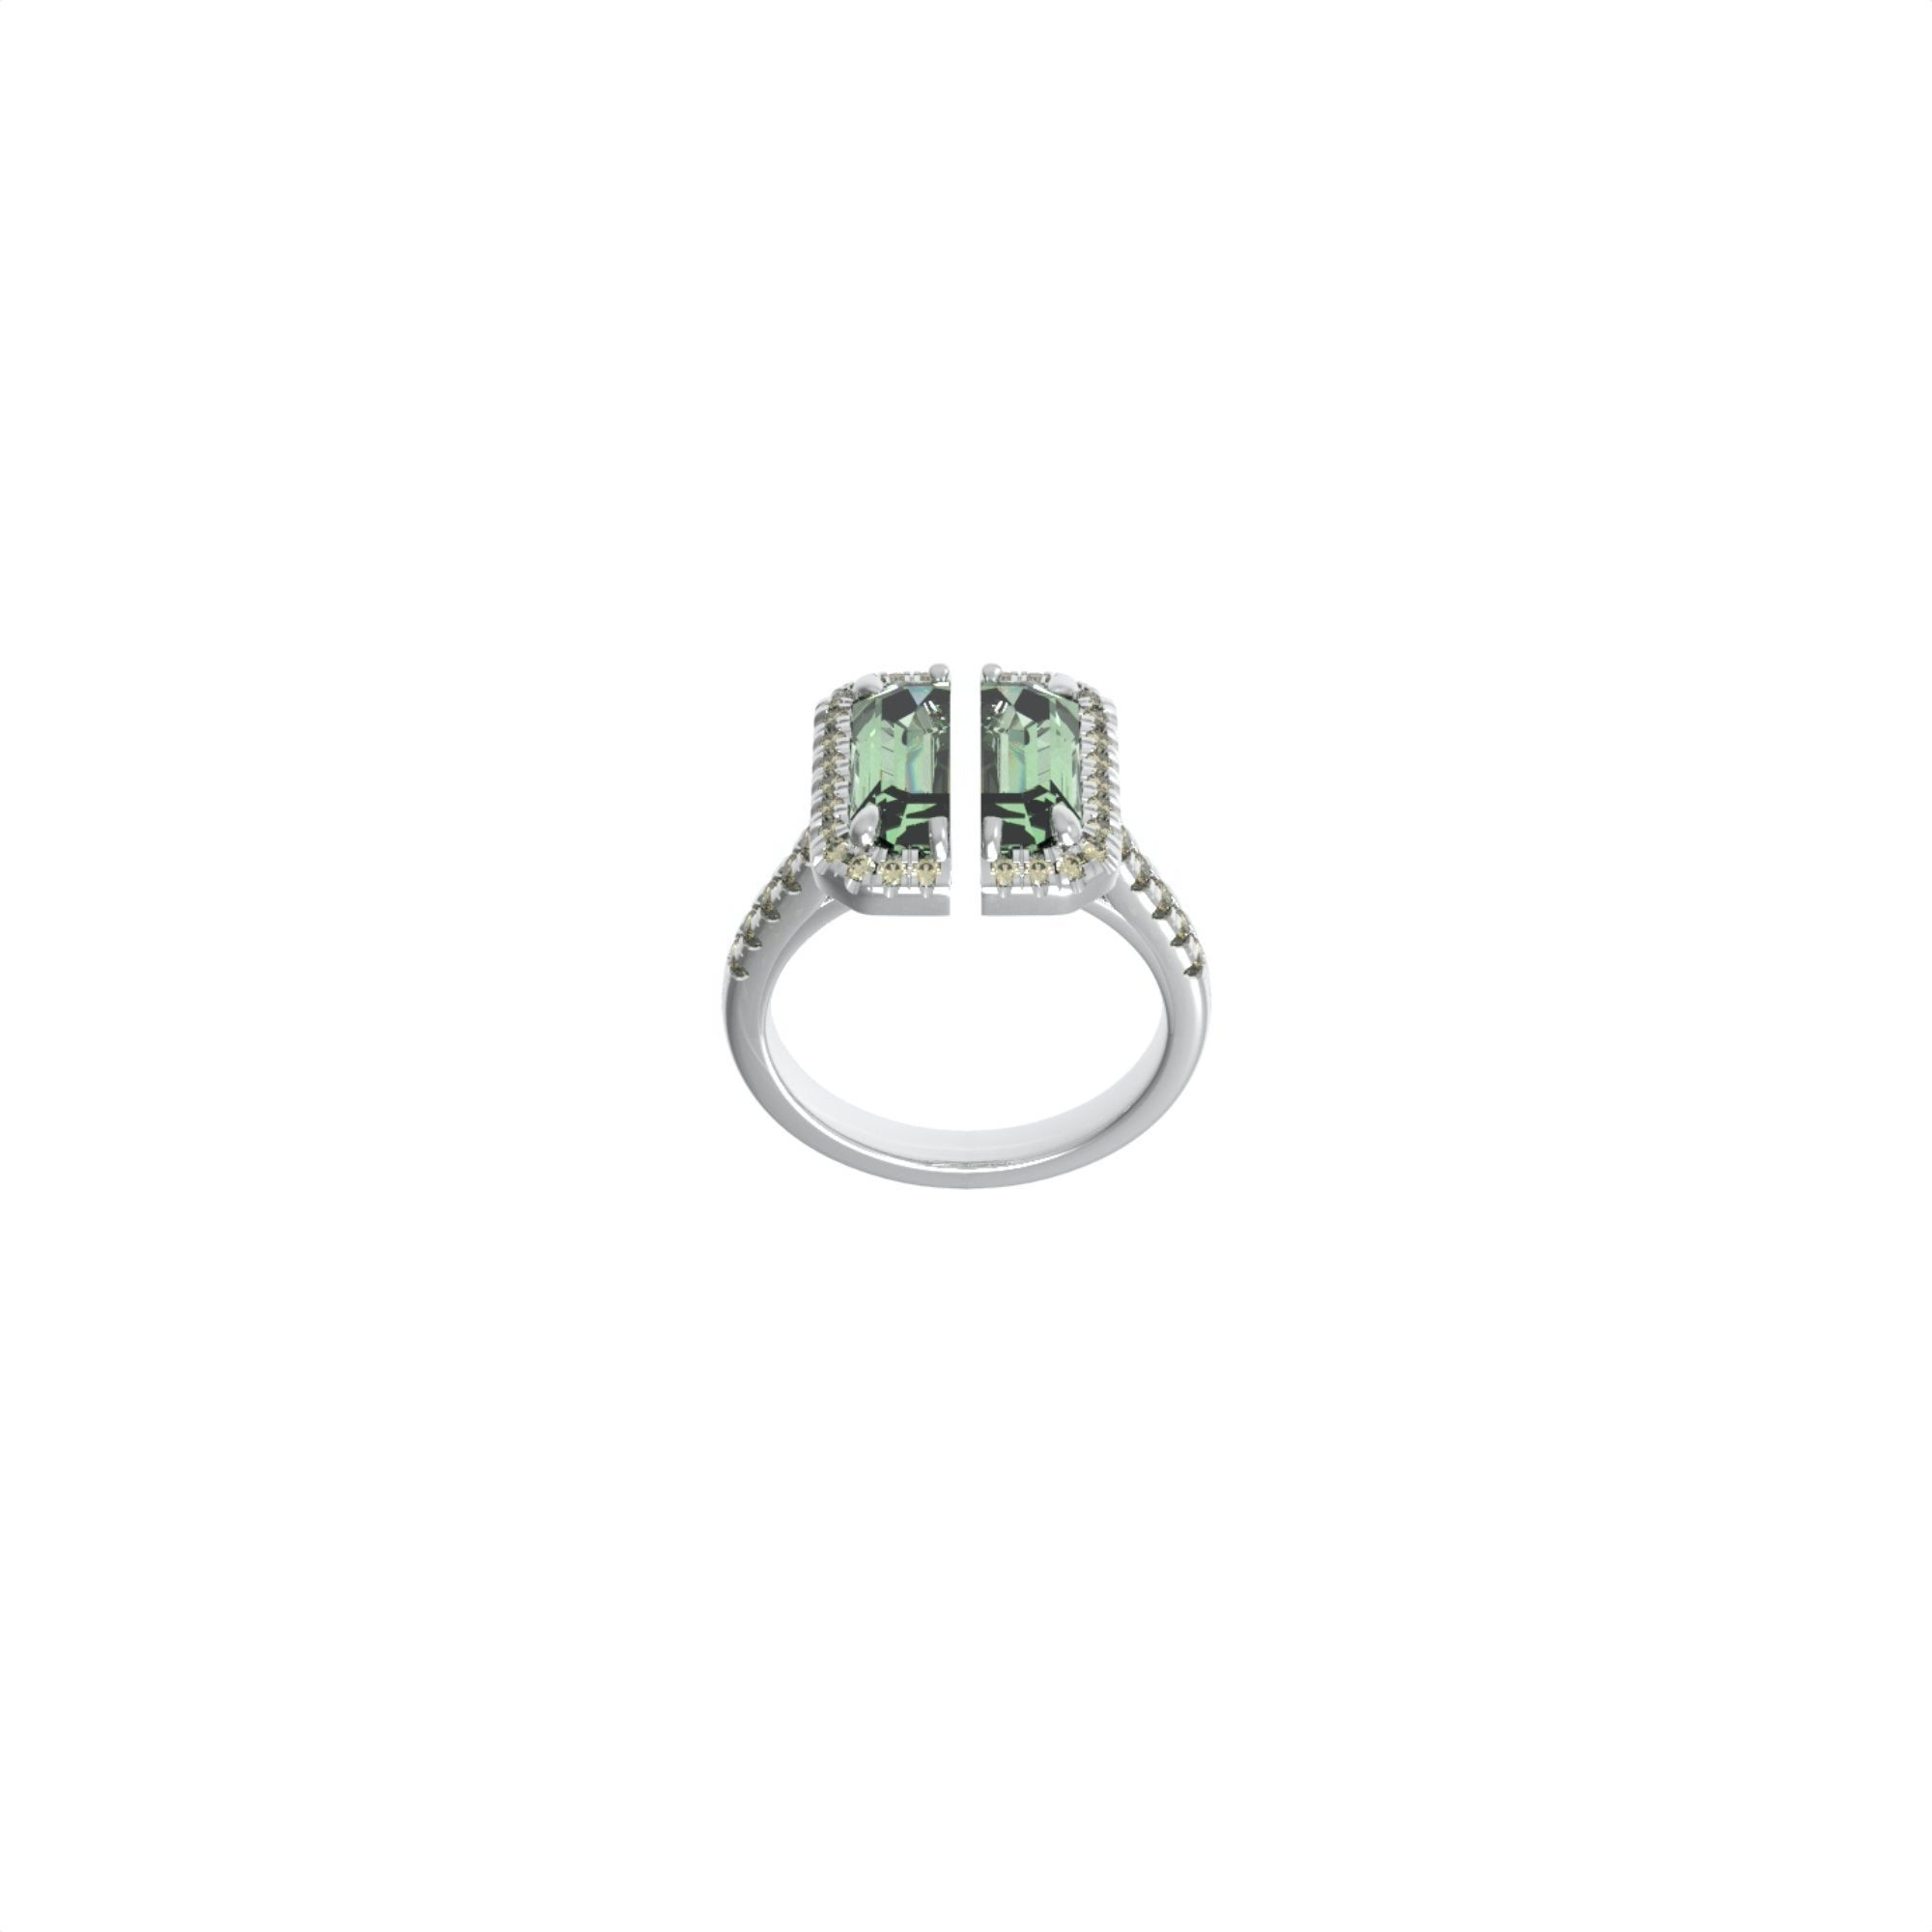 51 E JOHN Deconstruction Light Green Cropped Gem Ring | MADA IN CHINA